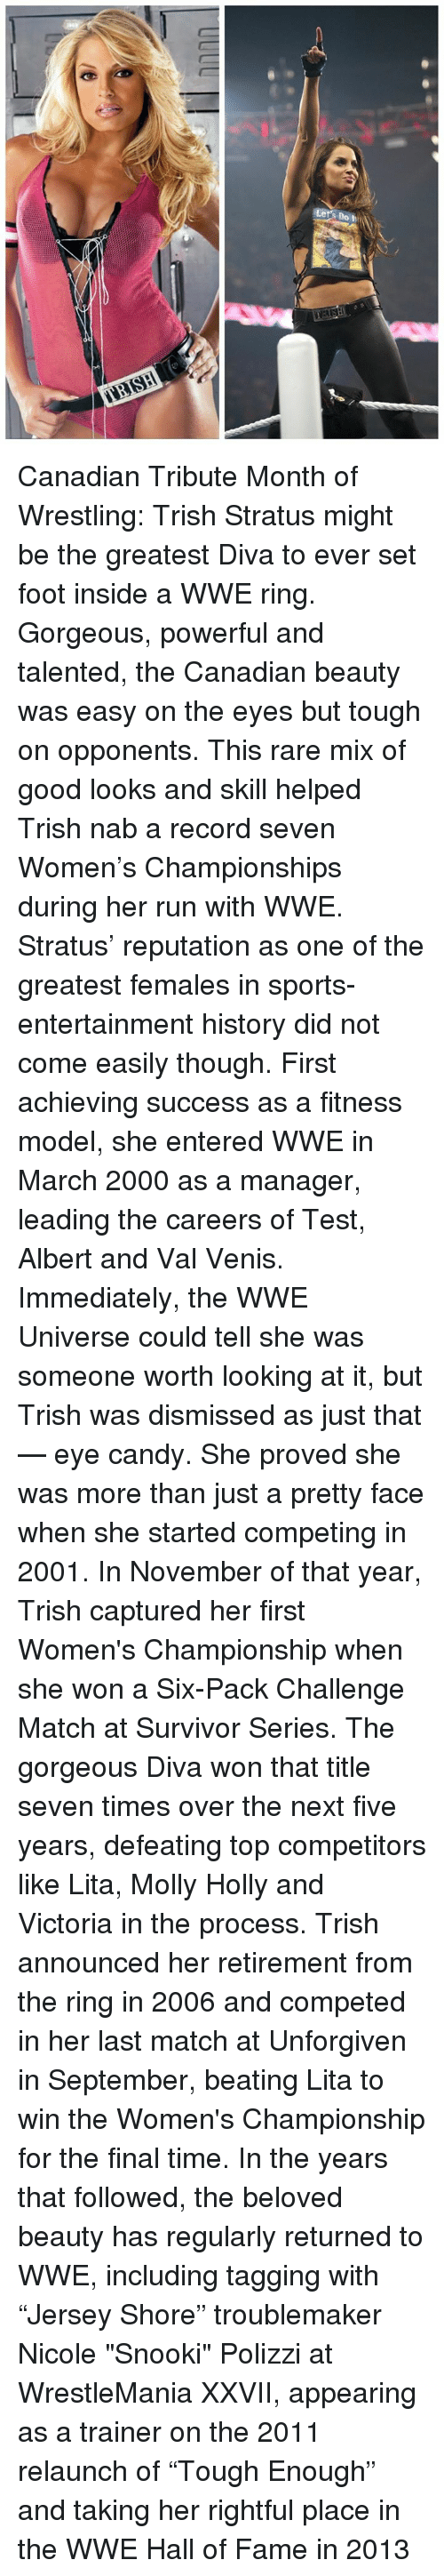 """Candy, Memes, and Molly: Let's no h Canadian Tribute Month of Wrestling: Trish Stratus might be the greatest Diva to ever set foot inside a WWE ring.  Gorgeous, powerful and talented, the Canadian beauty was easy on the eyes but tough on opponents. This rare mix of good looks and skill helped Trish nab a record seven Women's Championships during her run with WWE.  Stratus' reputation as one of the greatest females in sports-entertainment history did not come easily though. First achieving success as a fitness model, she entered WWE in March 2000 as a manager, leading the careers of Test, Albert and Val Venis. Immediately, the WWE Universe could tell she was someone worth looking at it, but Trish was dismissed as just that — eye candy.  She proved she was more than just a pretty face when she started competing in 2001. In November of that year, Trish captured her first Women's Championship when she won a Six-Pack Challenge Match at Survivor Series. The gorgeous Diva won that title seven times over the next five years, defeating top competitors like Lita, Molly Holly and Victoria in the process.  Trish announced her retirement from the ring in 2006 and competed in her last match at Unforgiven in September, beating Lita to win the Women's Championship for the final time. In the years that followed, the beloved beauty has regularly returned to WWE, including tagging with """"Jersey Shore"""" troublemaker Nicole """"Snooki"""" Polizzi at WrestleMania XXVII, appearing as a trainer on the 2011 relaunch of """"Tough Enough"""" and taking her rightful place in the WWE Hall of Fame in 2013"""